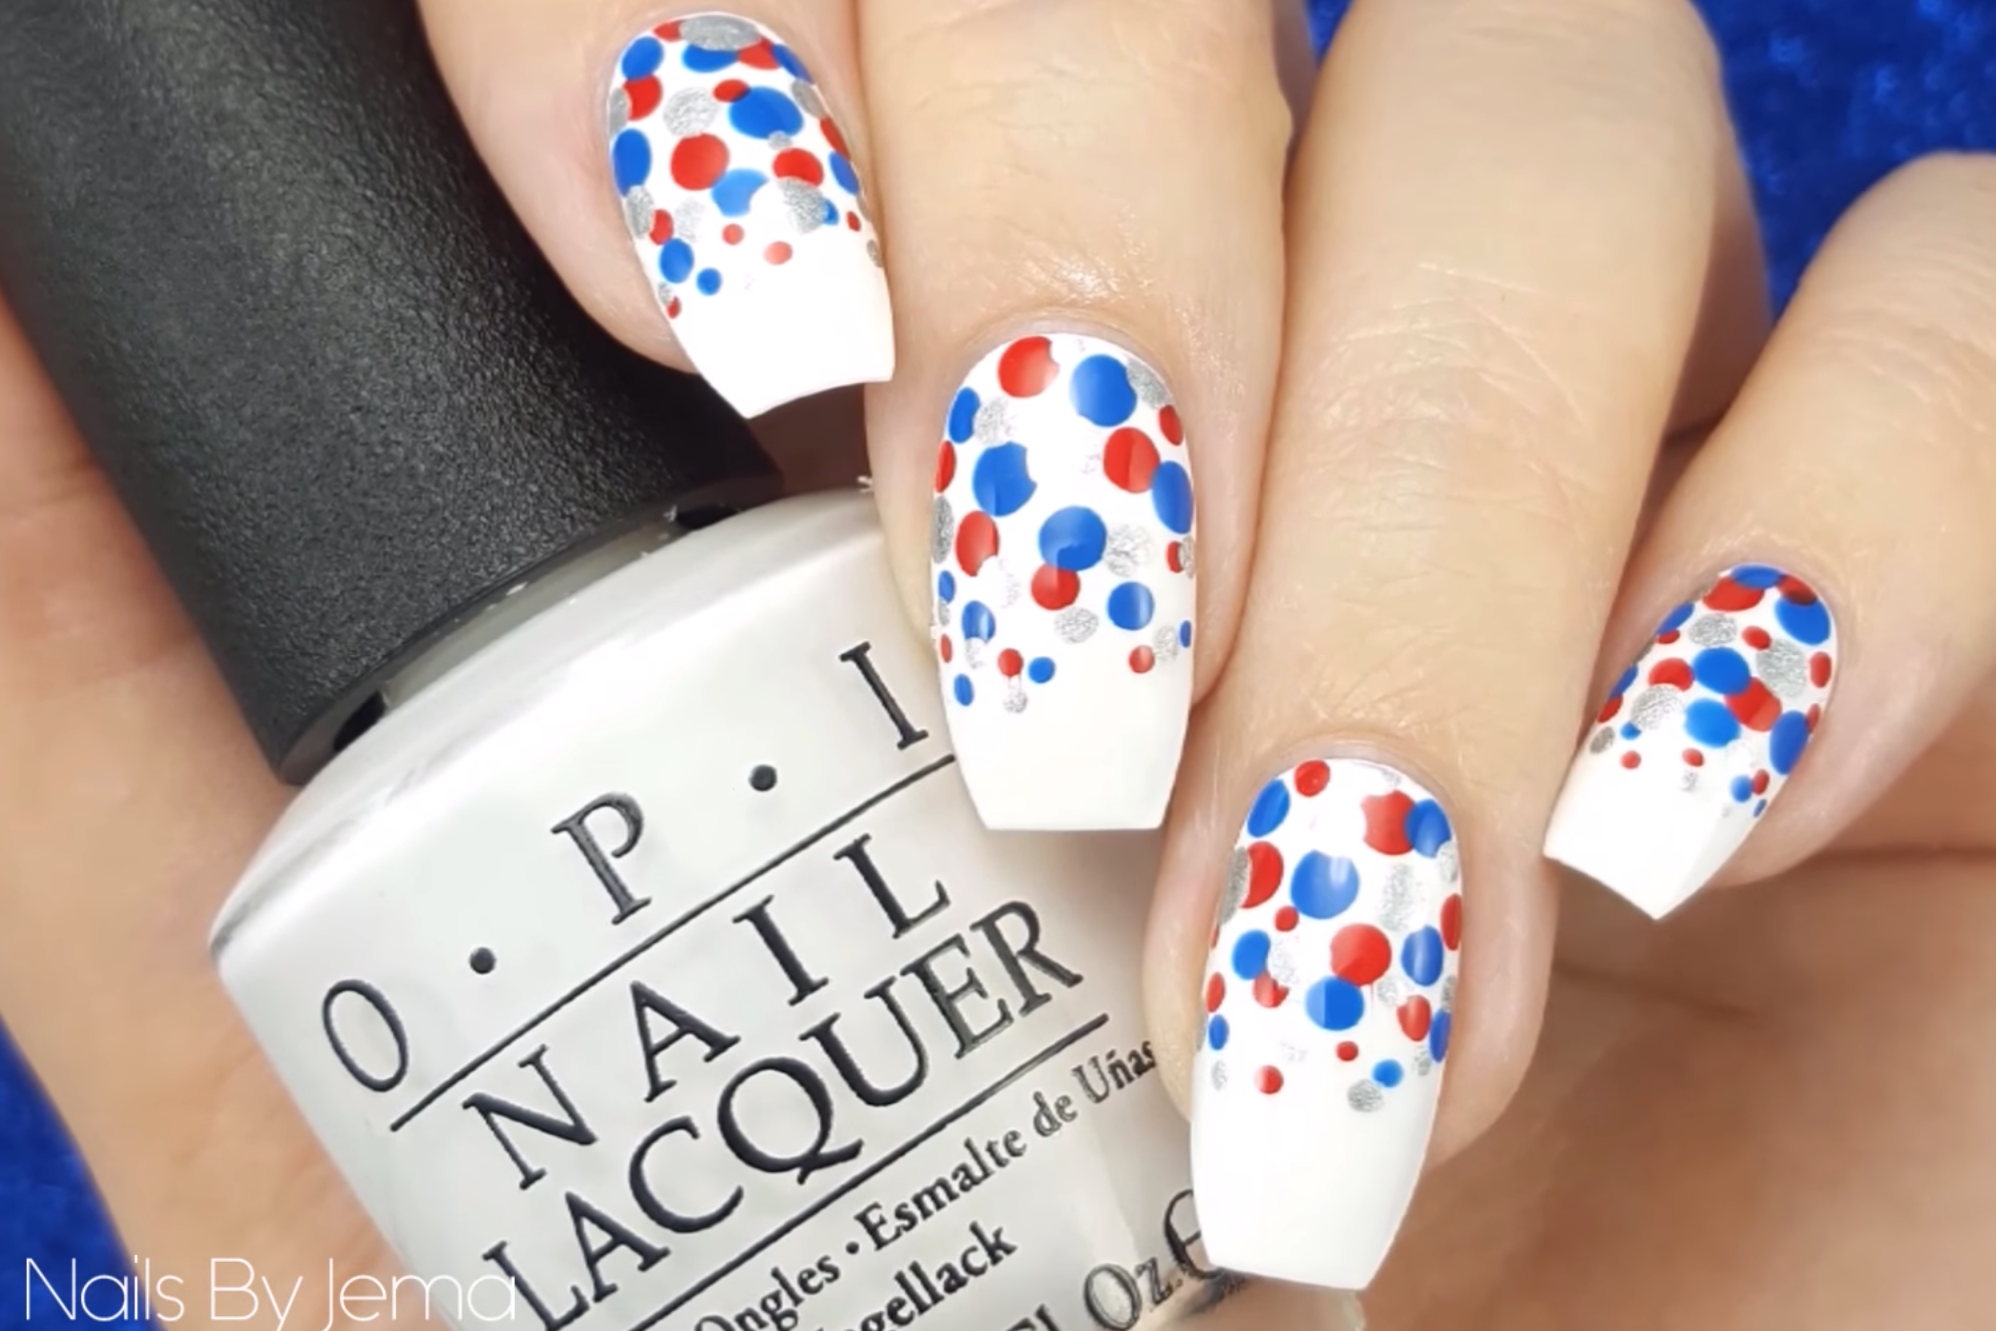 22 Best 4th Of July Nail Art Designs Cool Ideas For Patriotic